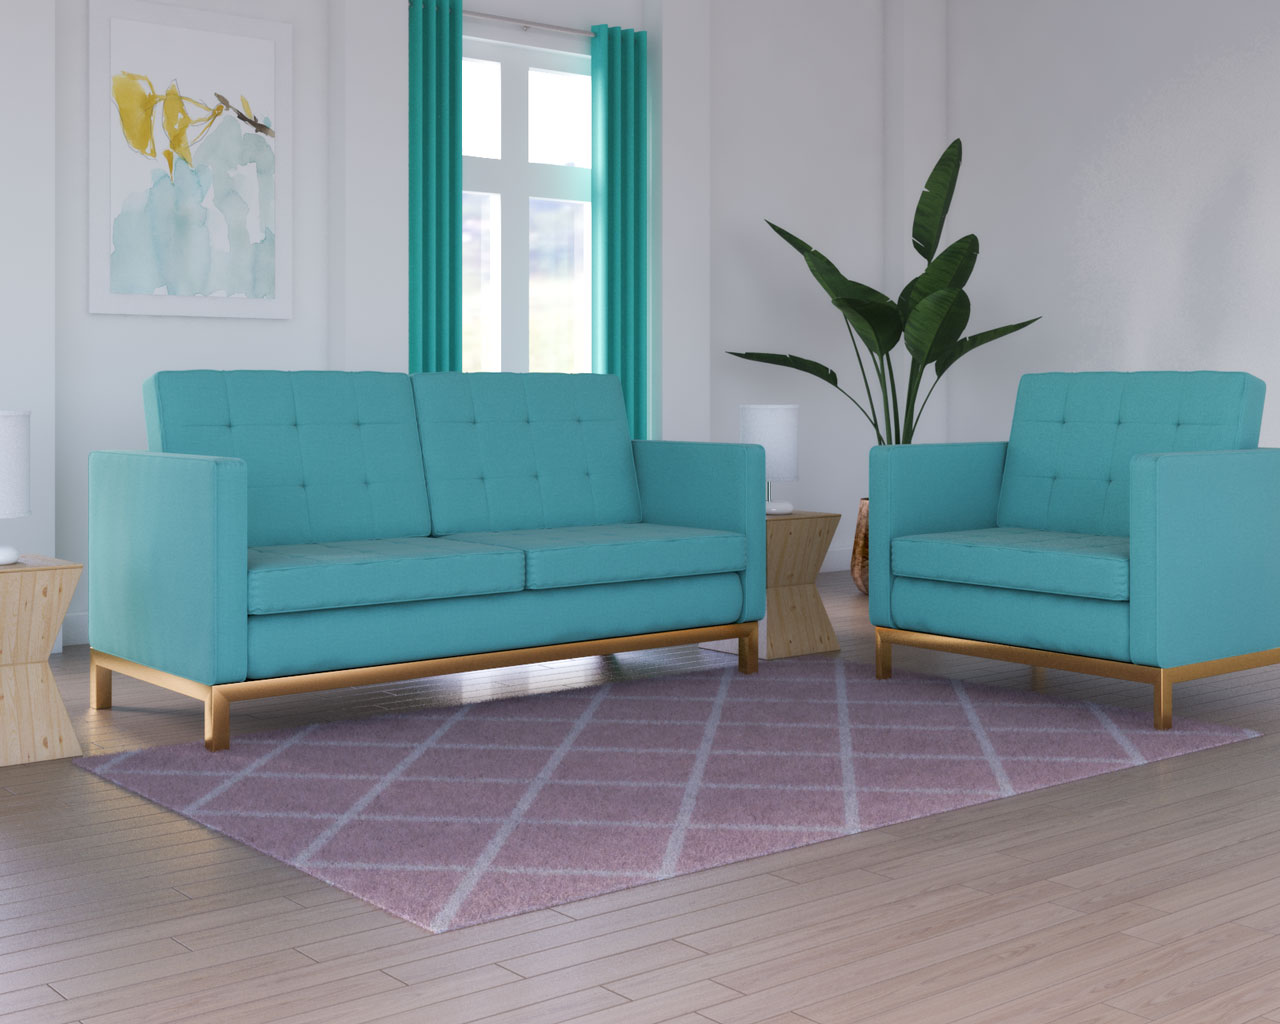 Pink rug with teal couch